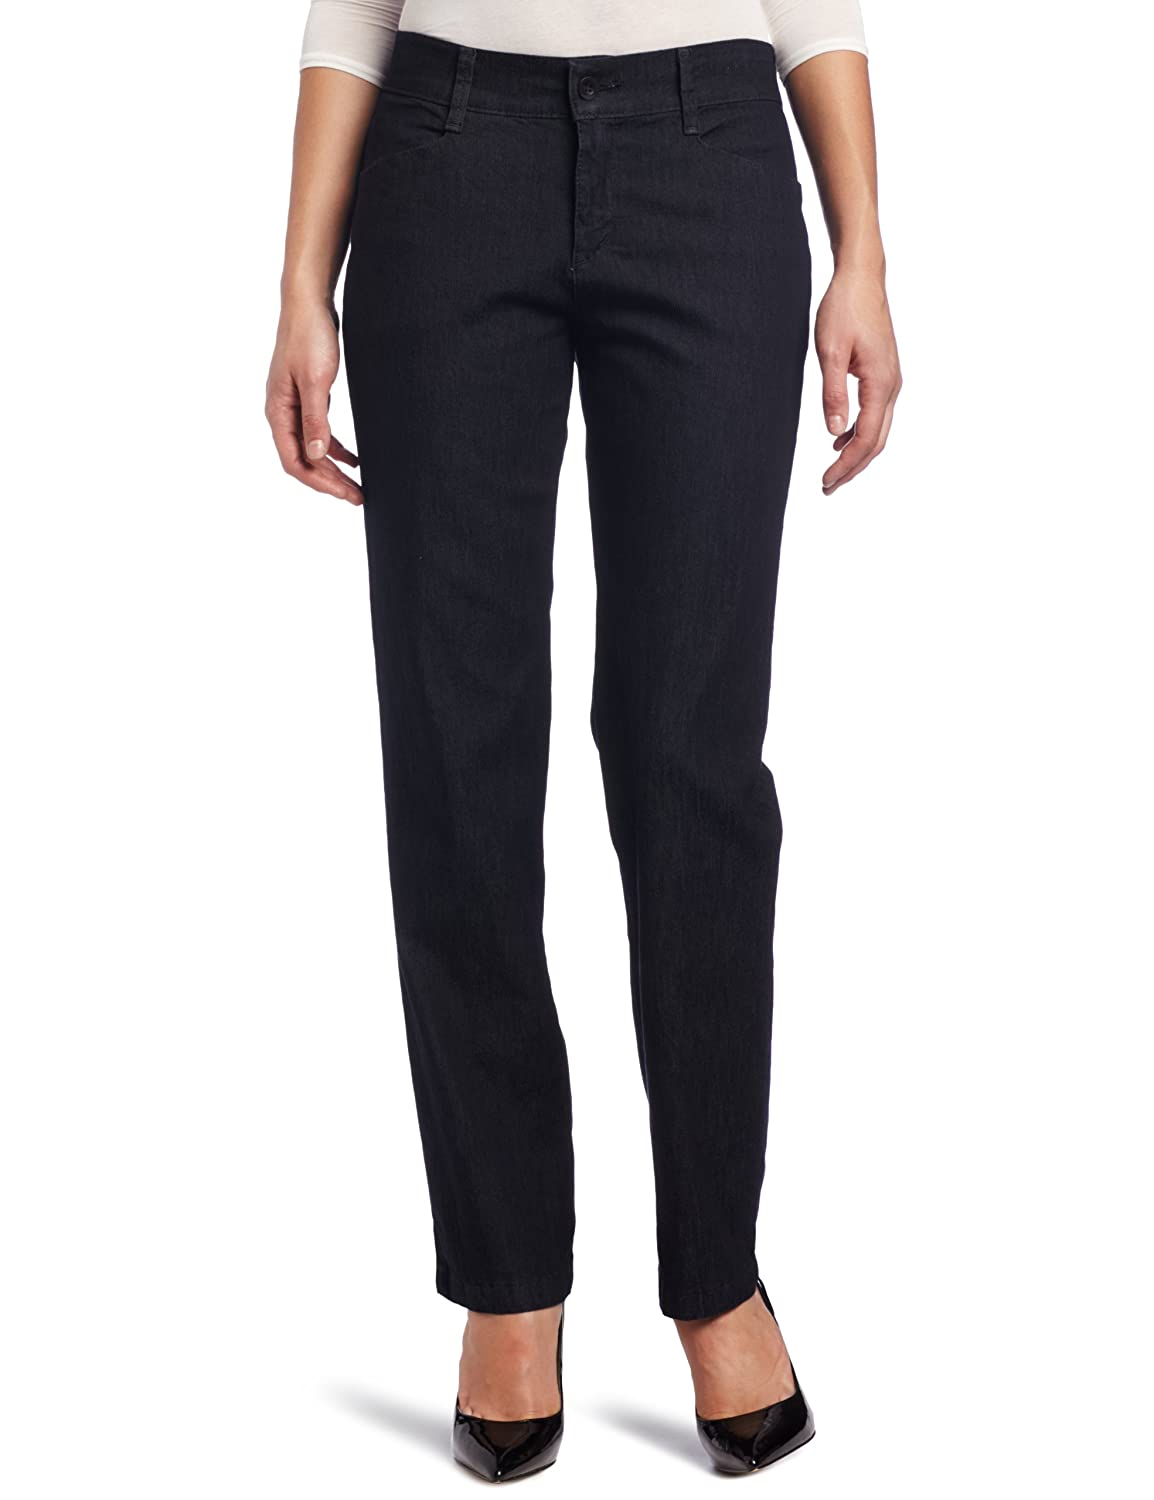 LEE Women's Relaxed Fit Plain Front Straight Leg Pant Lee Women's/Junior's